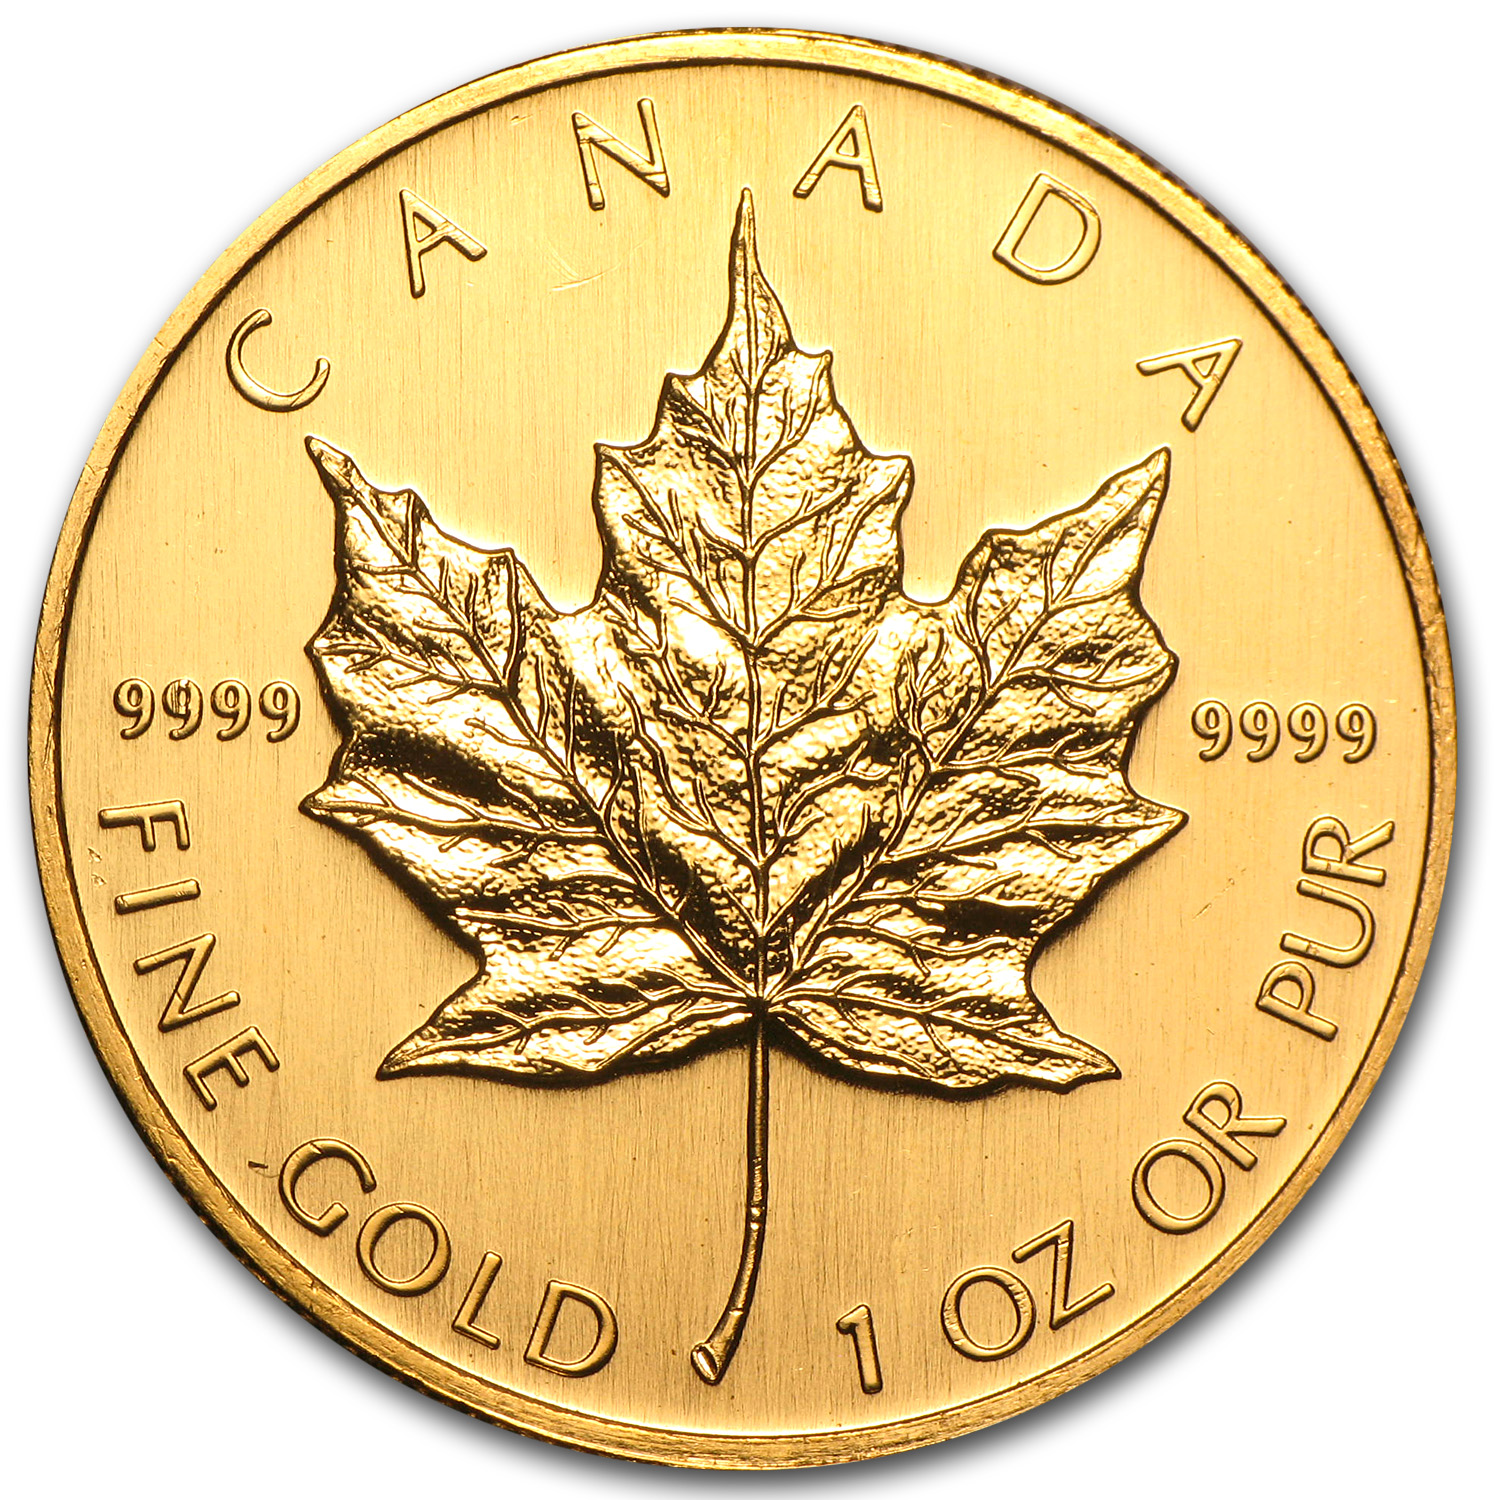 2002 1 oz Gold Canadian Maple Leaf - Brilliant Uncirculated